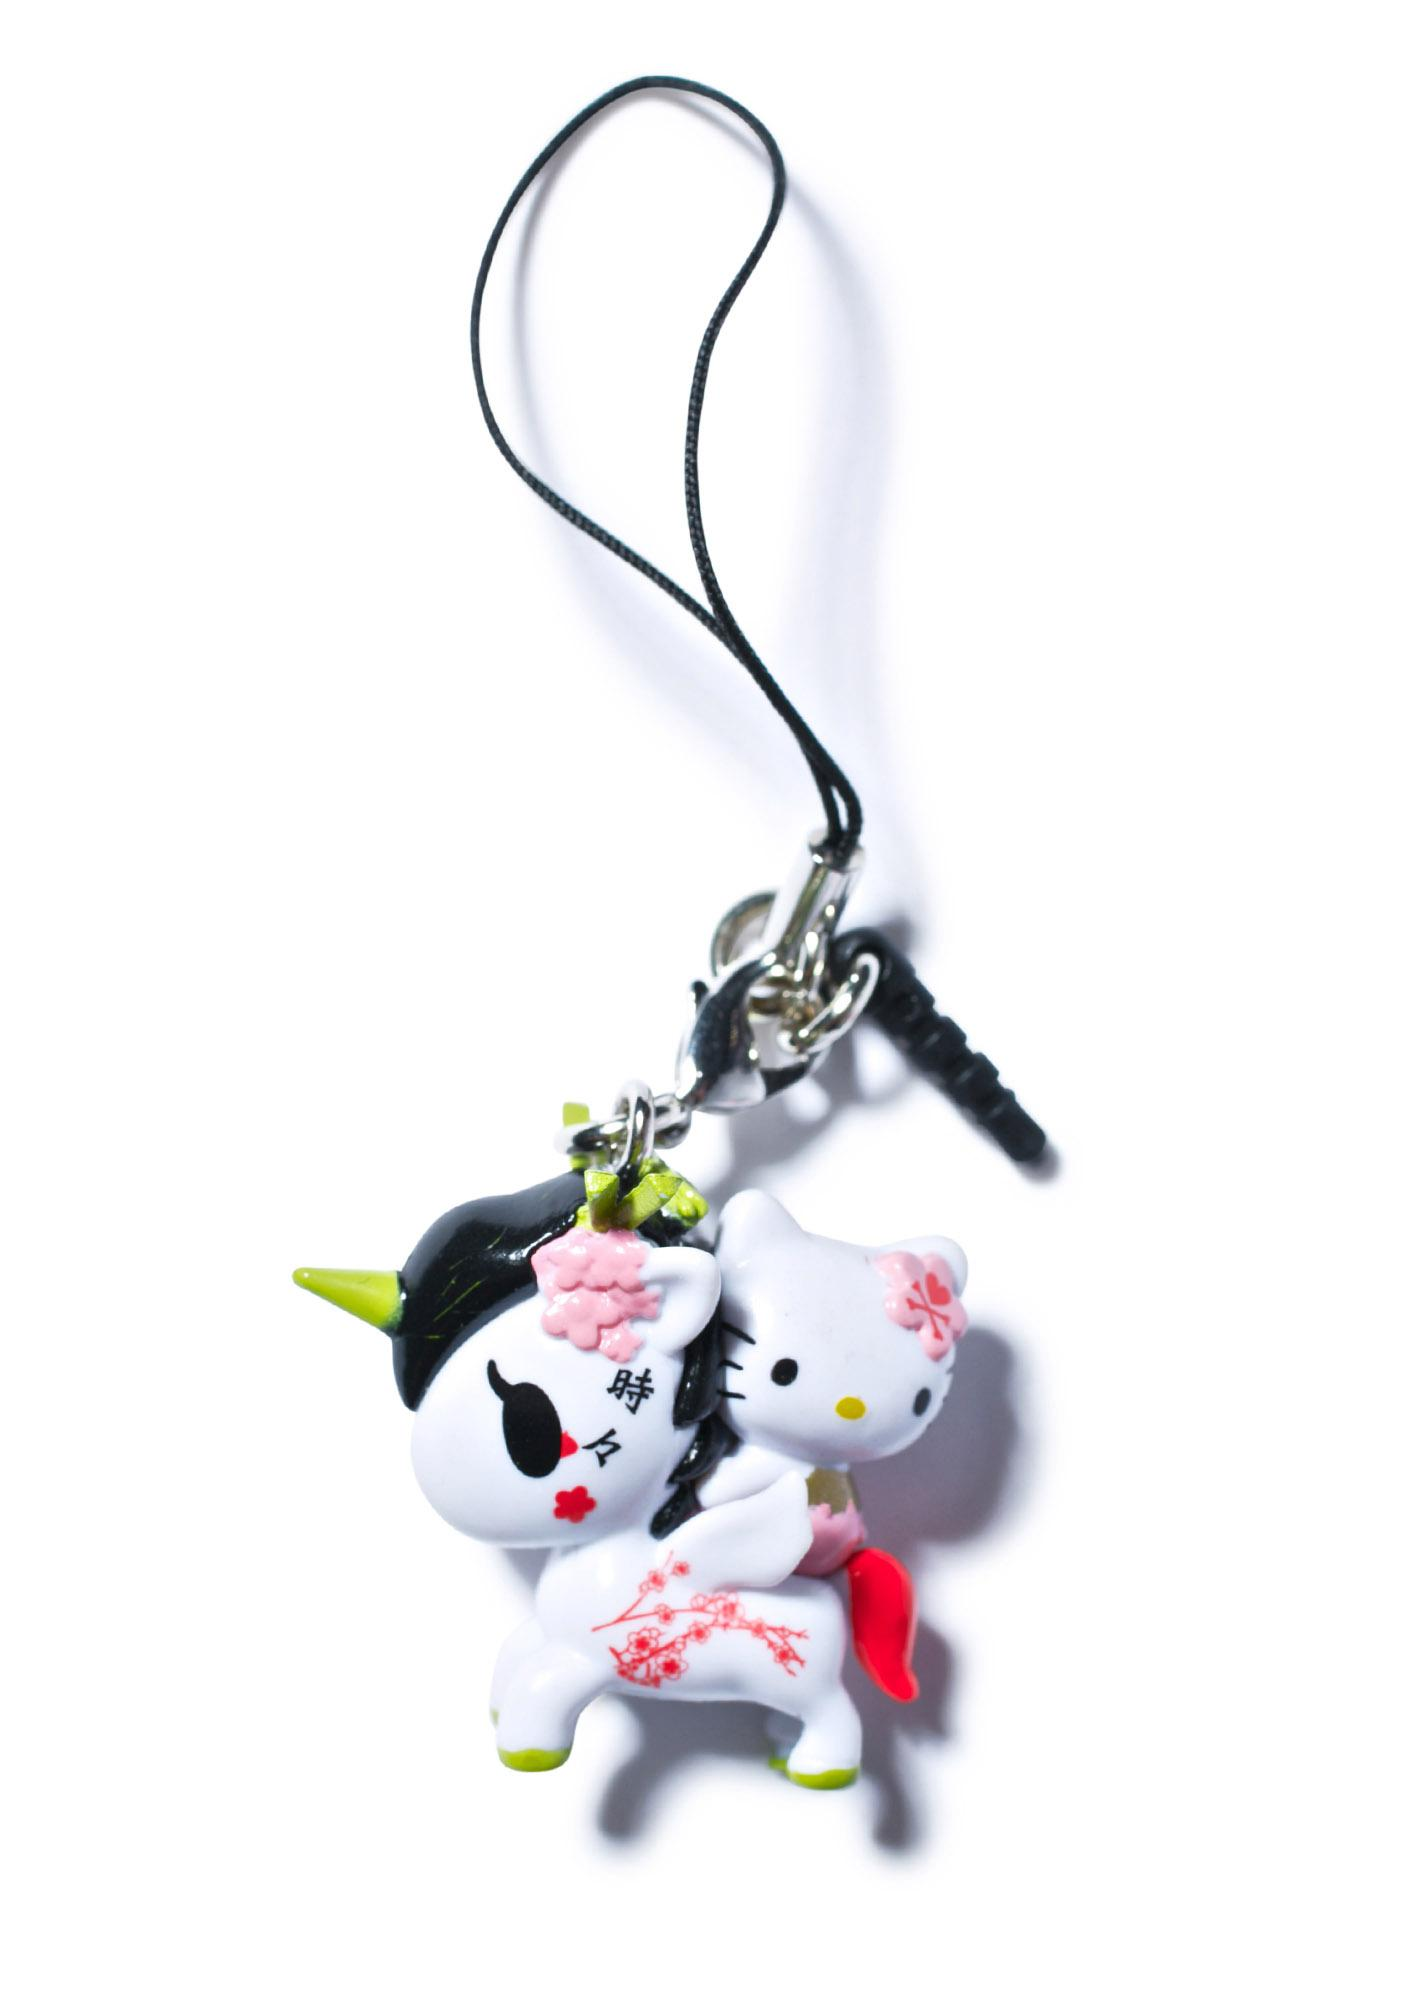 Tokidoki Unicorno Frenzies x Hello Kitty Blind Box